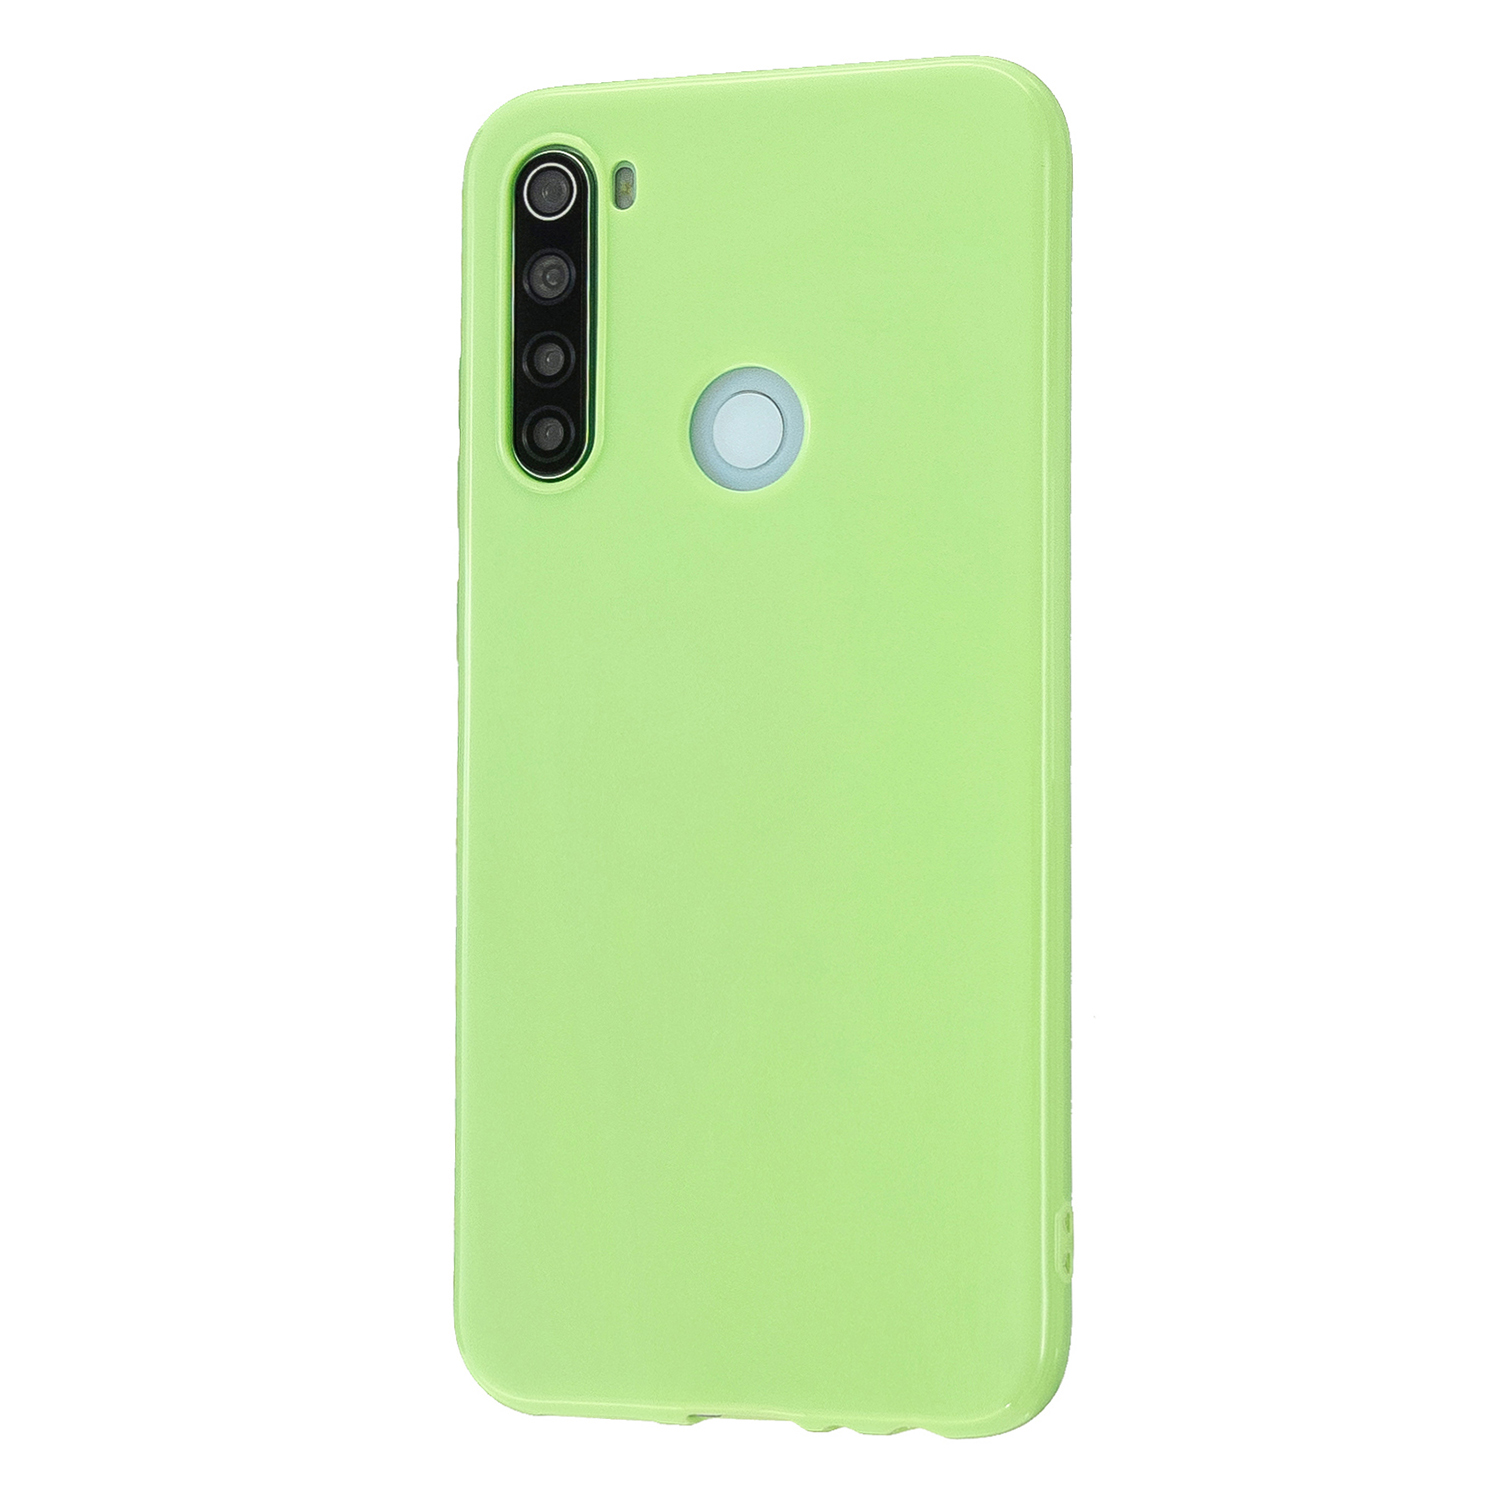 For Redmi Note 8/8 Pro Cellphone Cover Reinforced Soft TPU Phone Case Anti-scratch Full Body Protection Fluorescent green